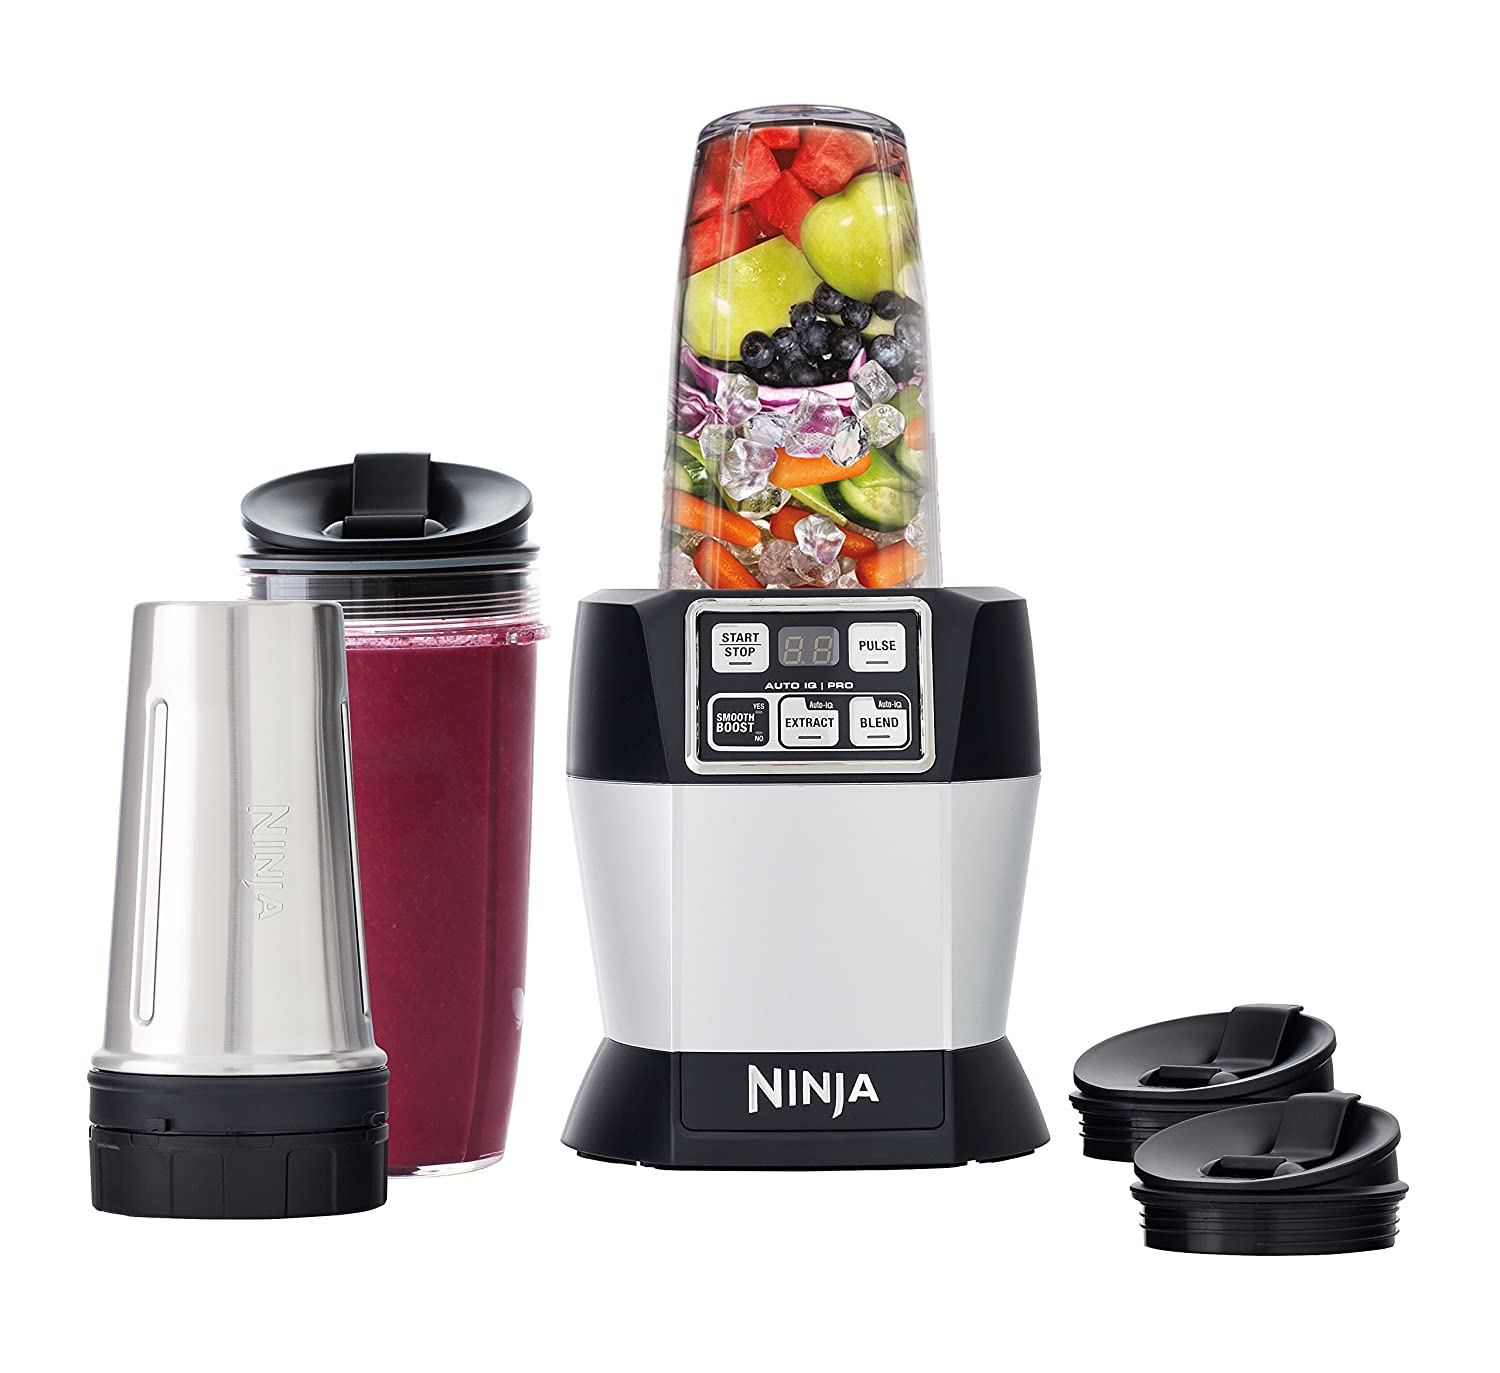 Nutri ninja blender system with auto iq technology - Amazon Com Ninja Nutri Auto Iq Pro Complete Blender Bl487 Kitchen Dining